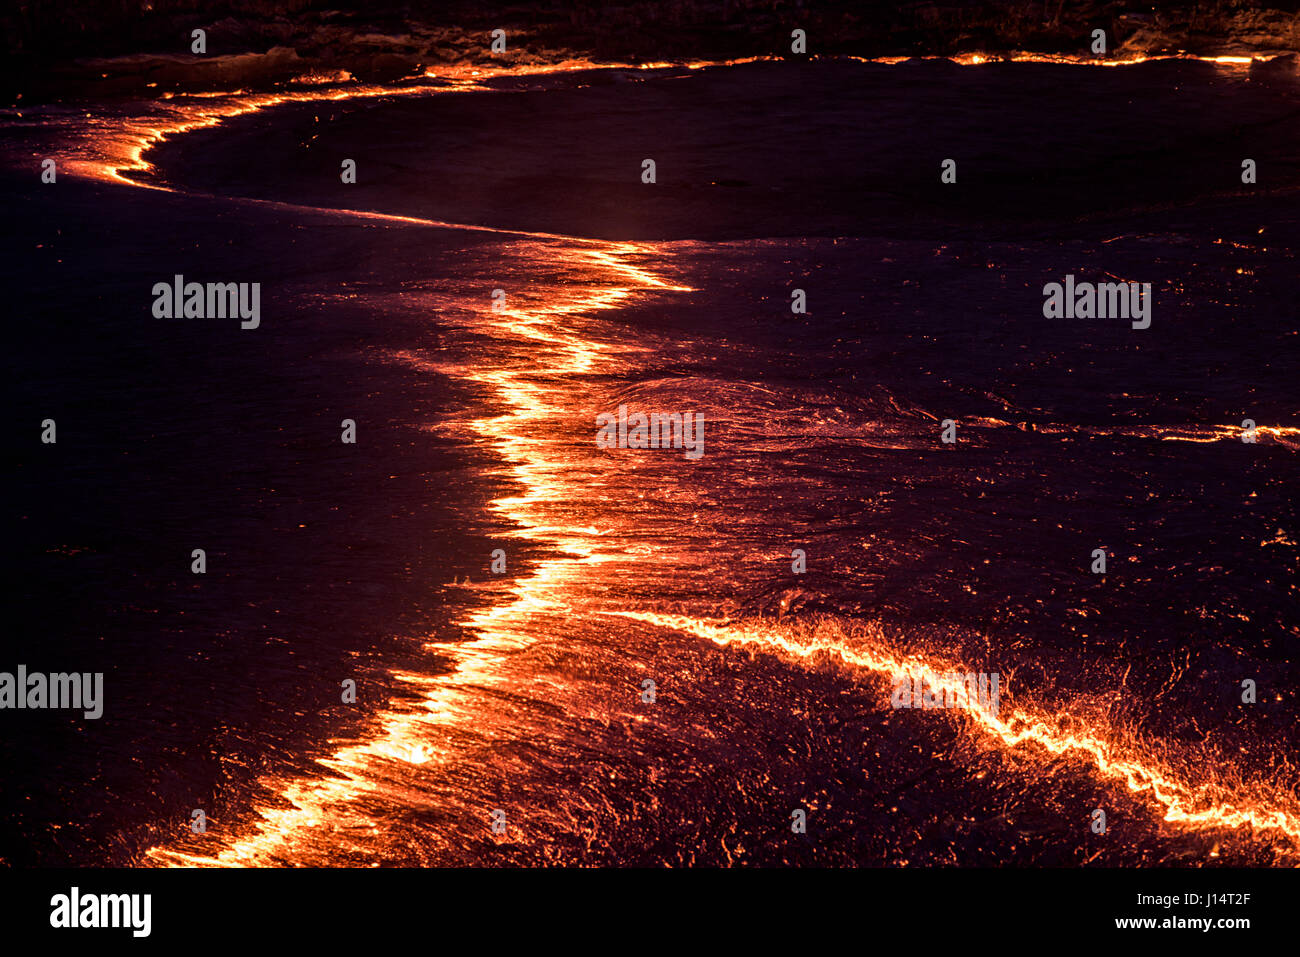 AFAR REGION, ETHIOPIA: HAVE YOU ever wondered what it must look like to stare into the depths of hell? Pictures - Stock Image